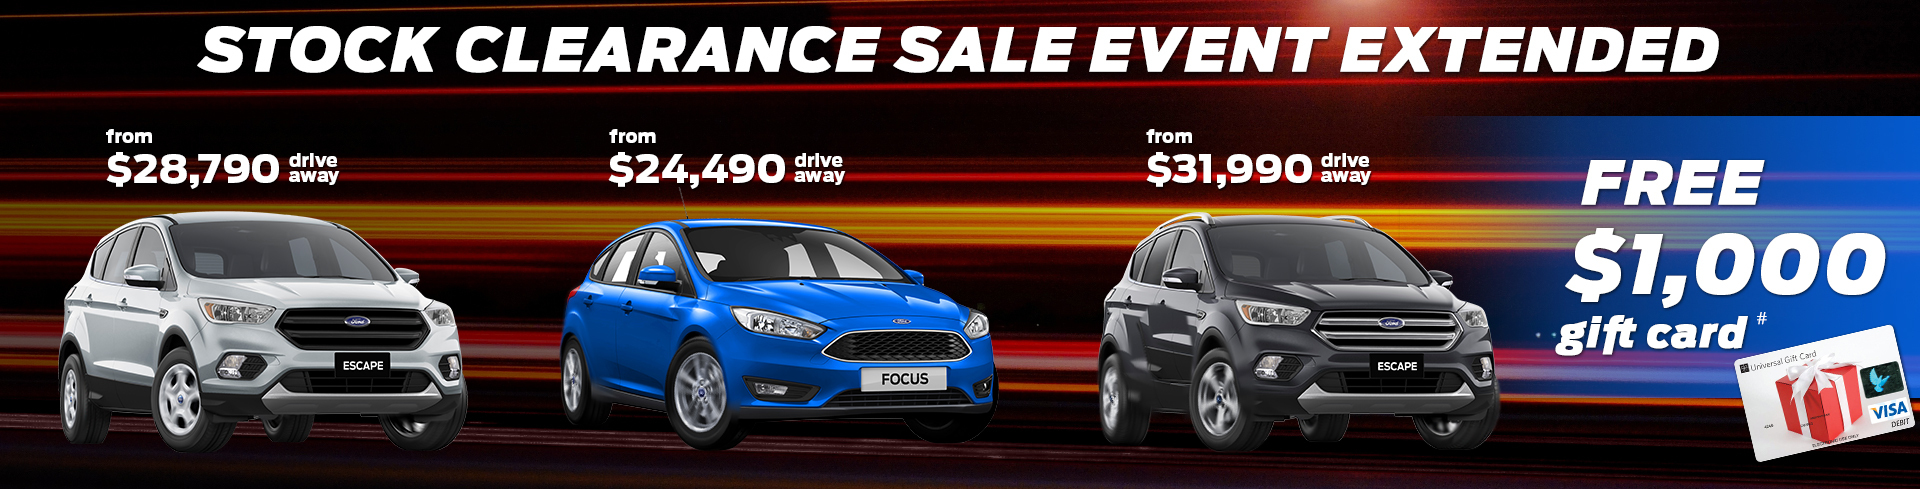 Macarthur Ford Narellan Stock Clearance Sale Event